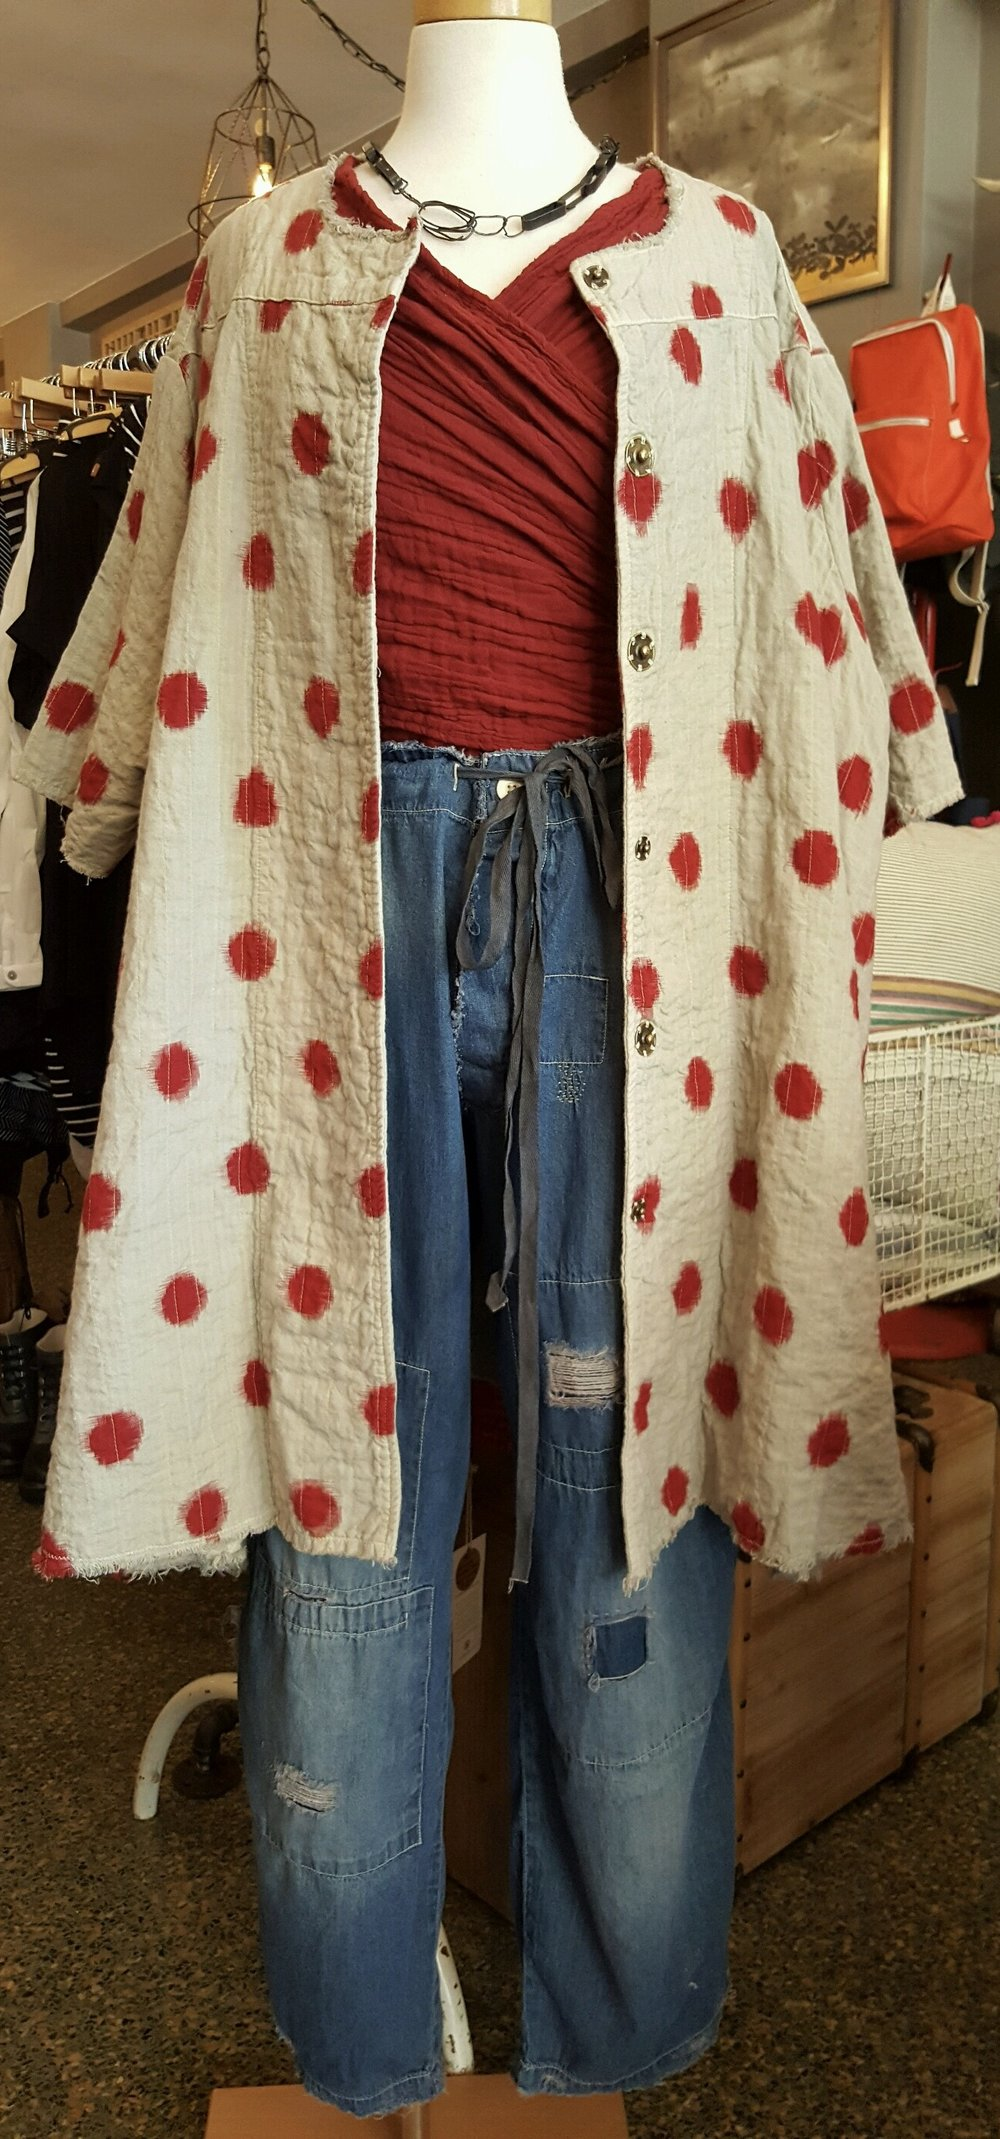 FullSizeRender_7 copy.jpg